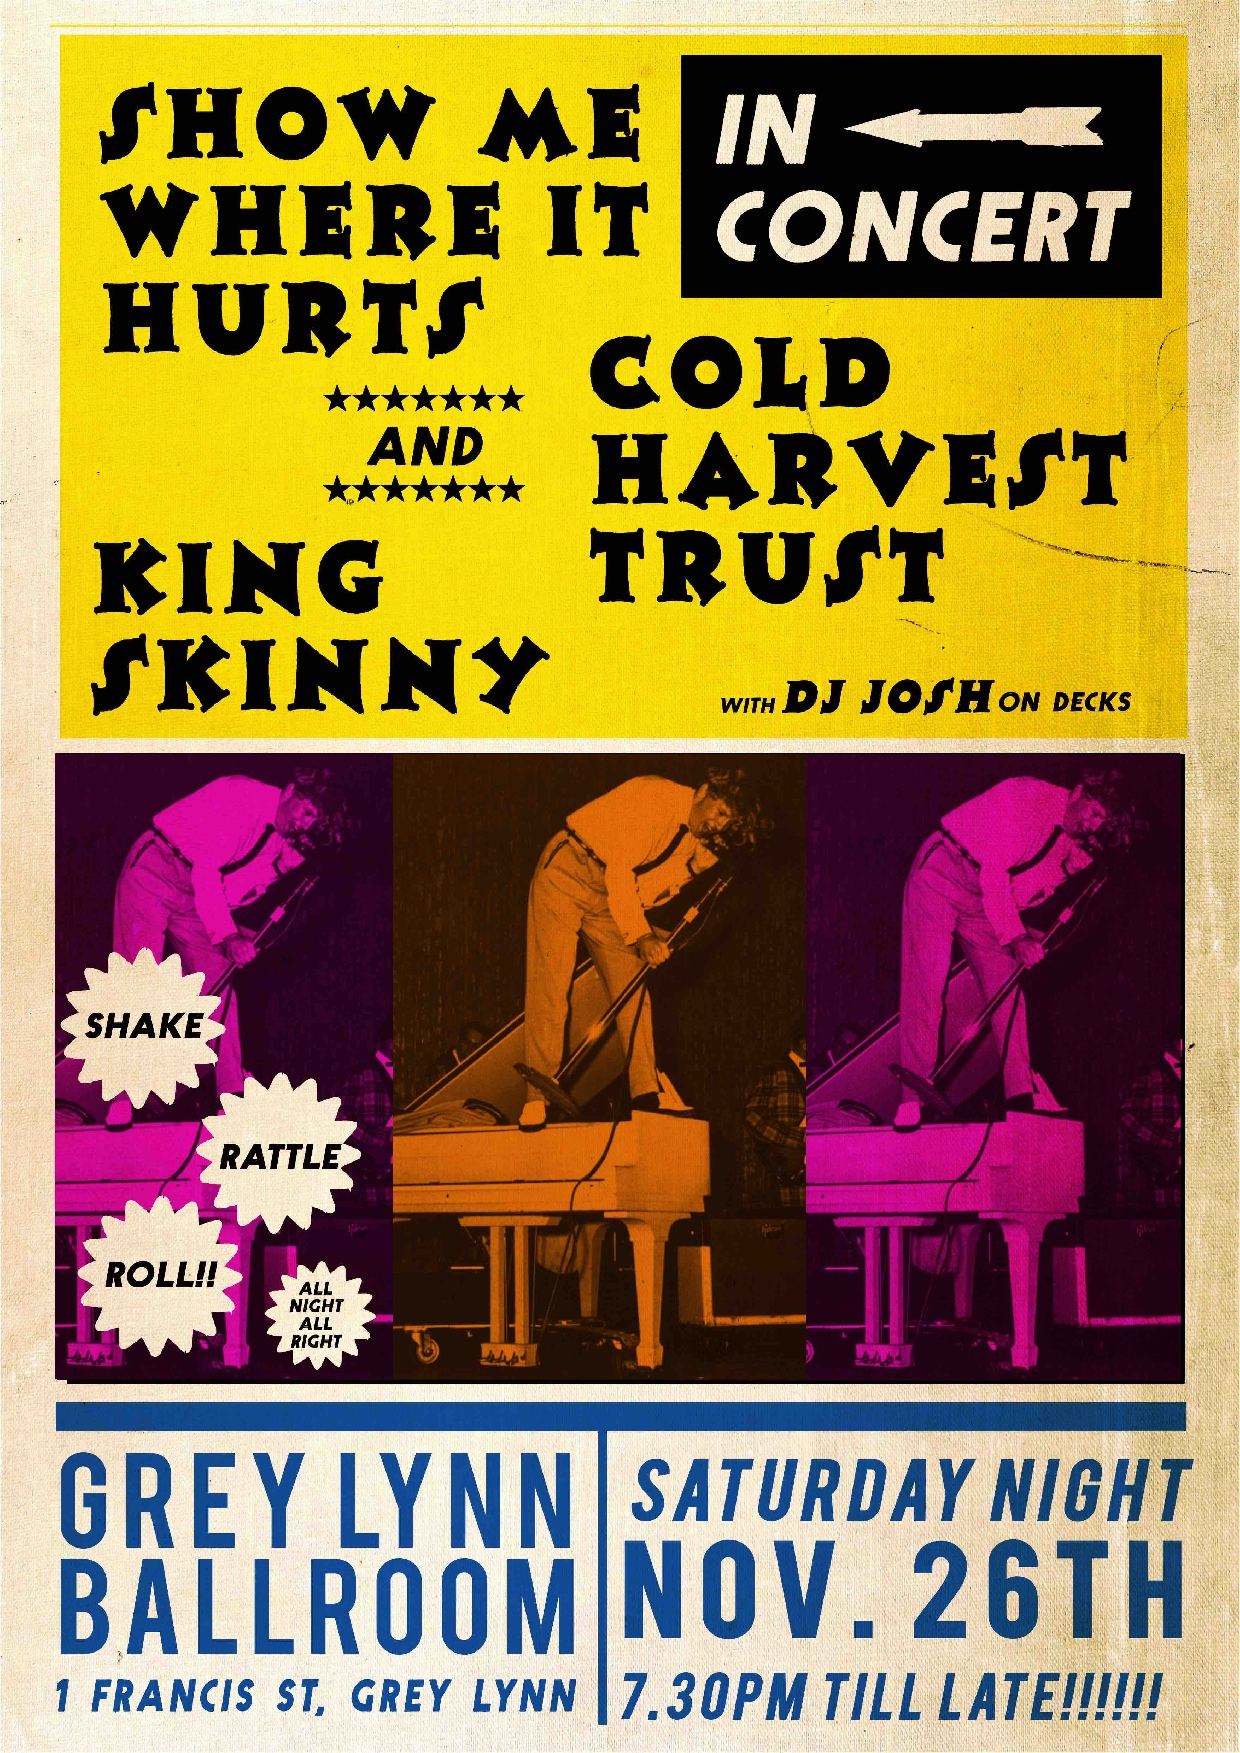 In Concert - Show Me Where It Hurts,  King Skinny,  Cold Harvest Trust